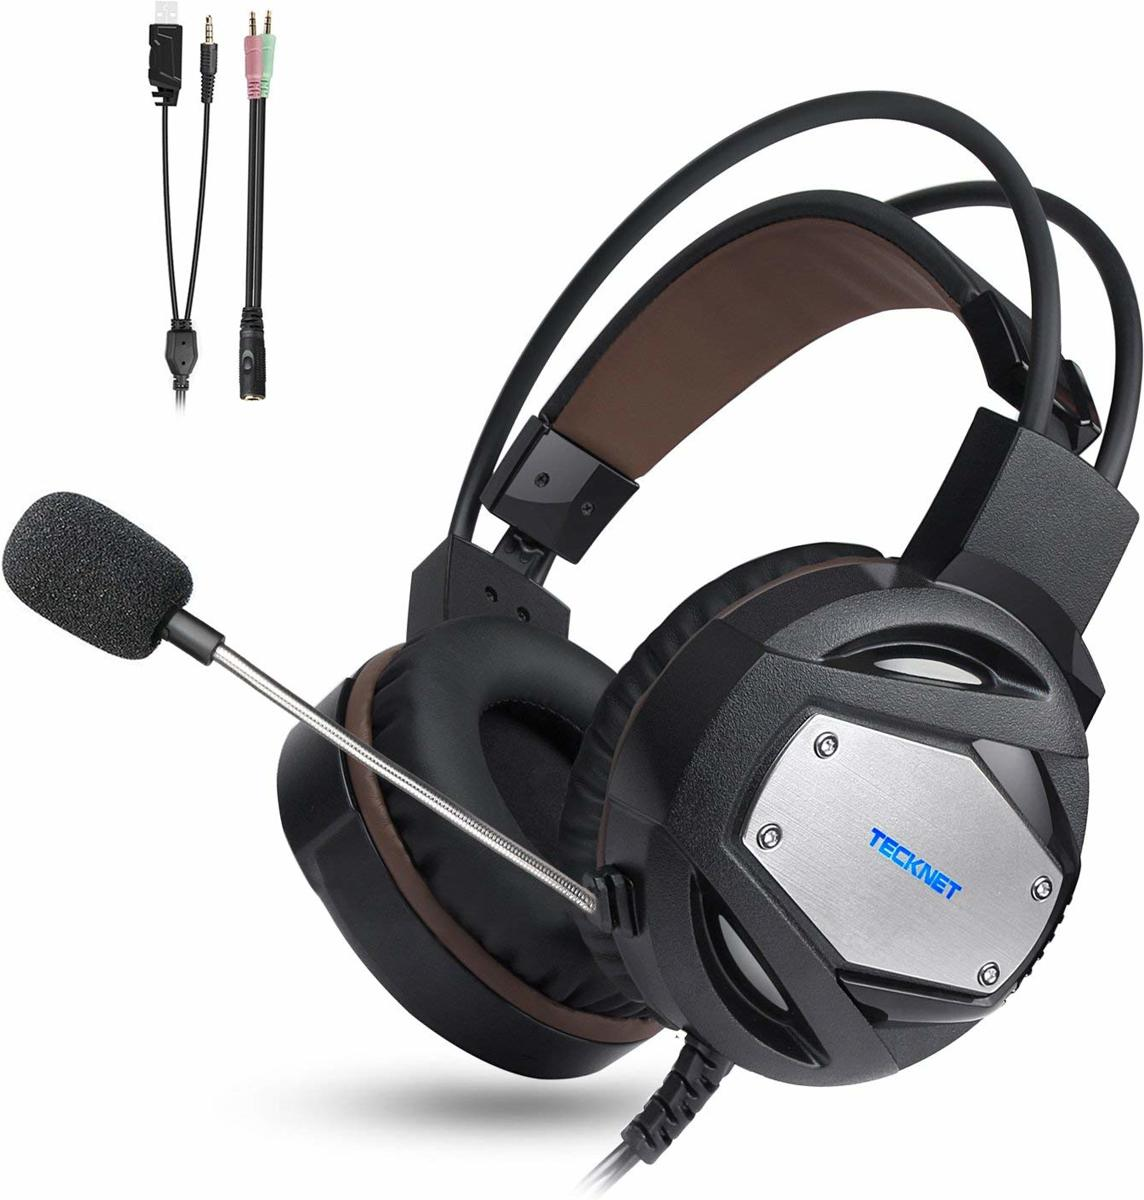 Tecknet On-ear Gaming Headset (PC + PS4 + Xbox One + Mac + Laptops + Mobiele telefoons) - Met Noise Cancelling Mic & Volume Control - Zwart